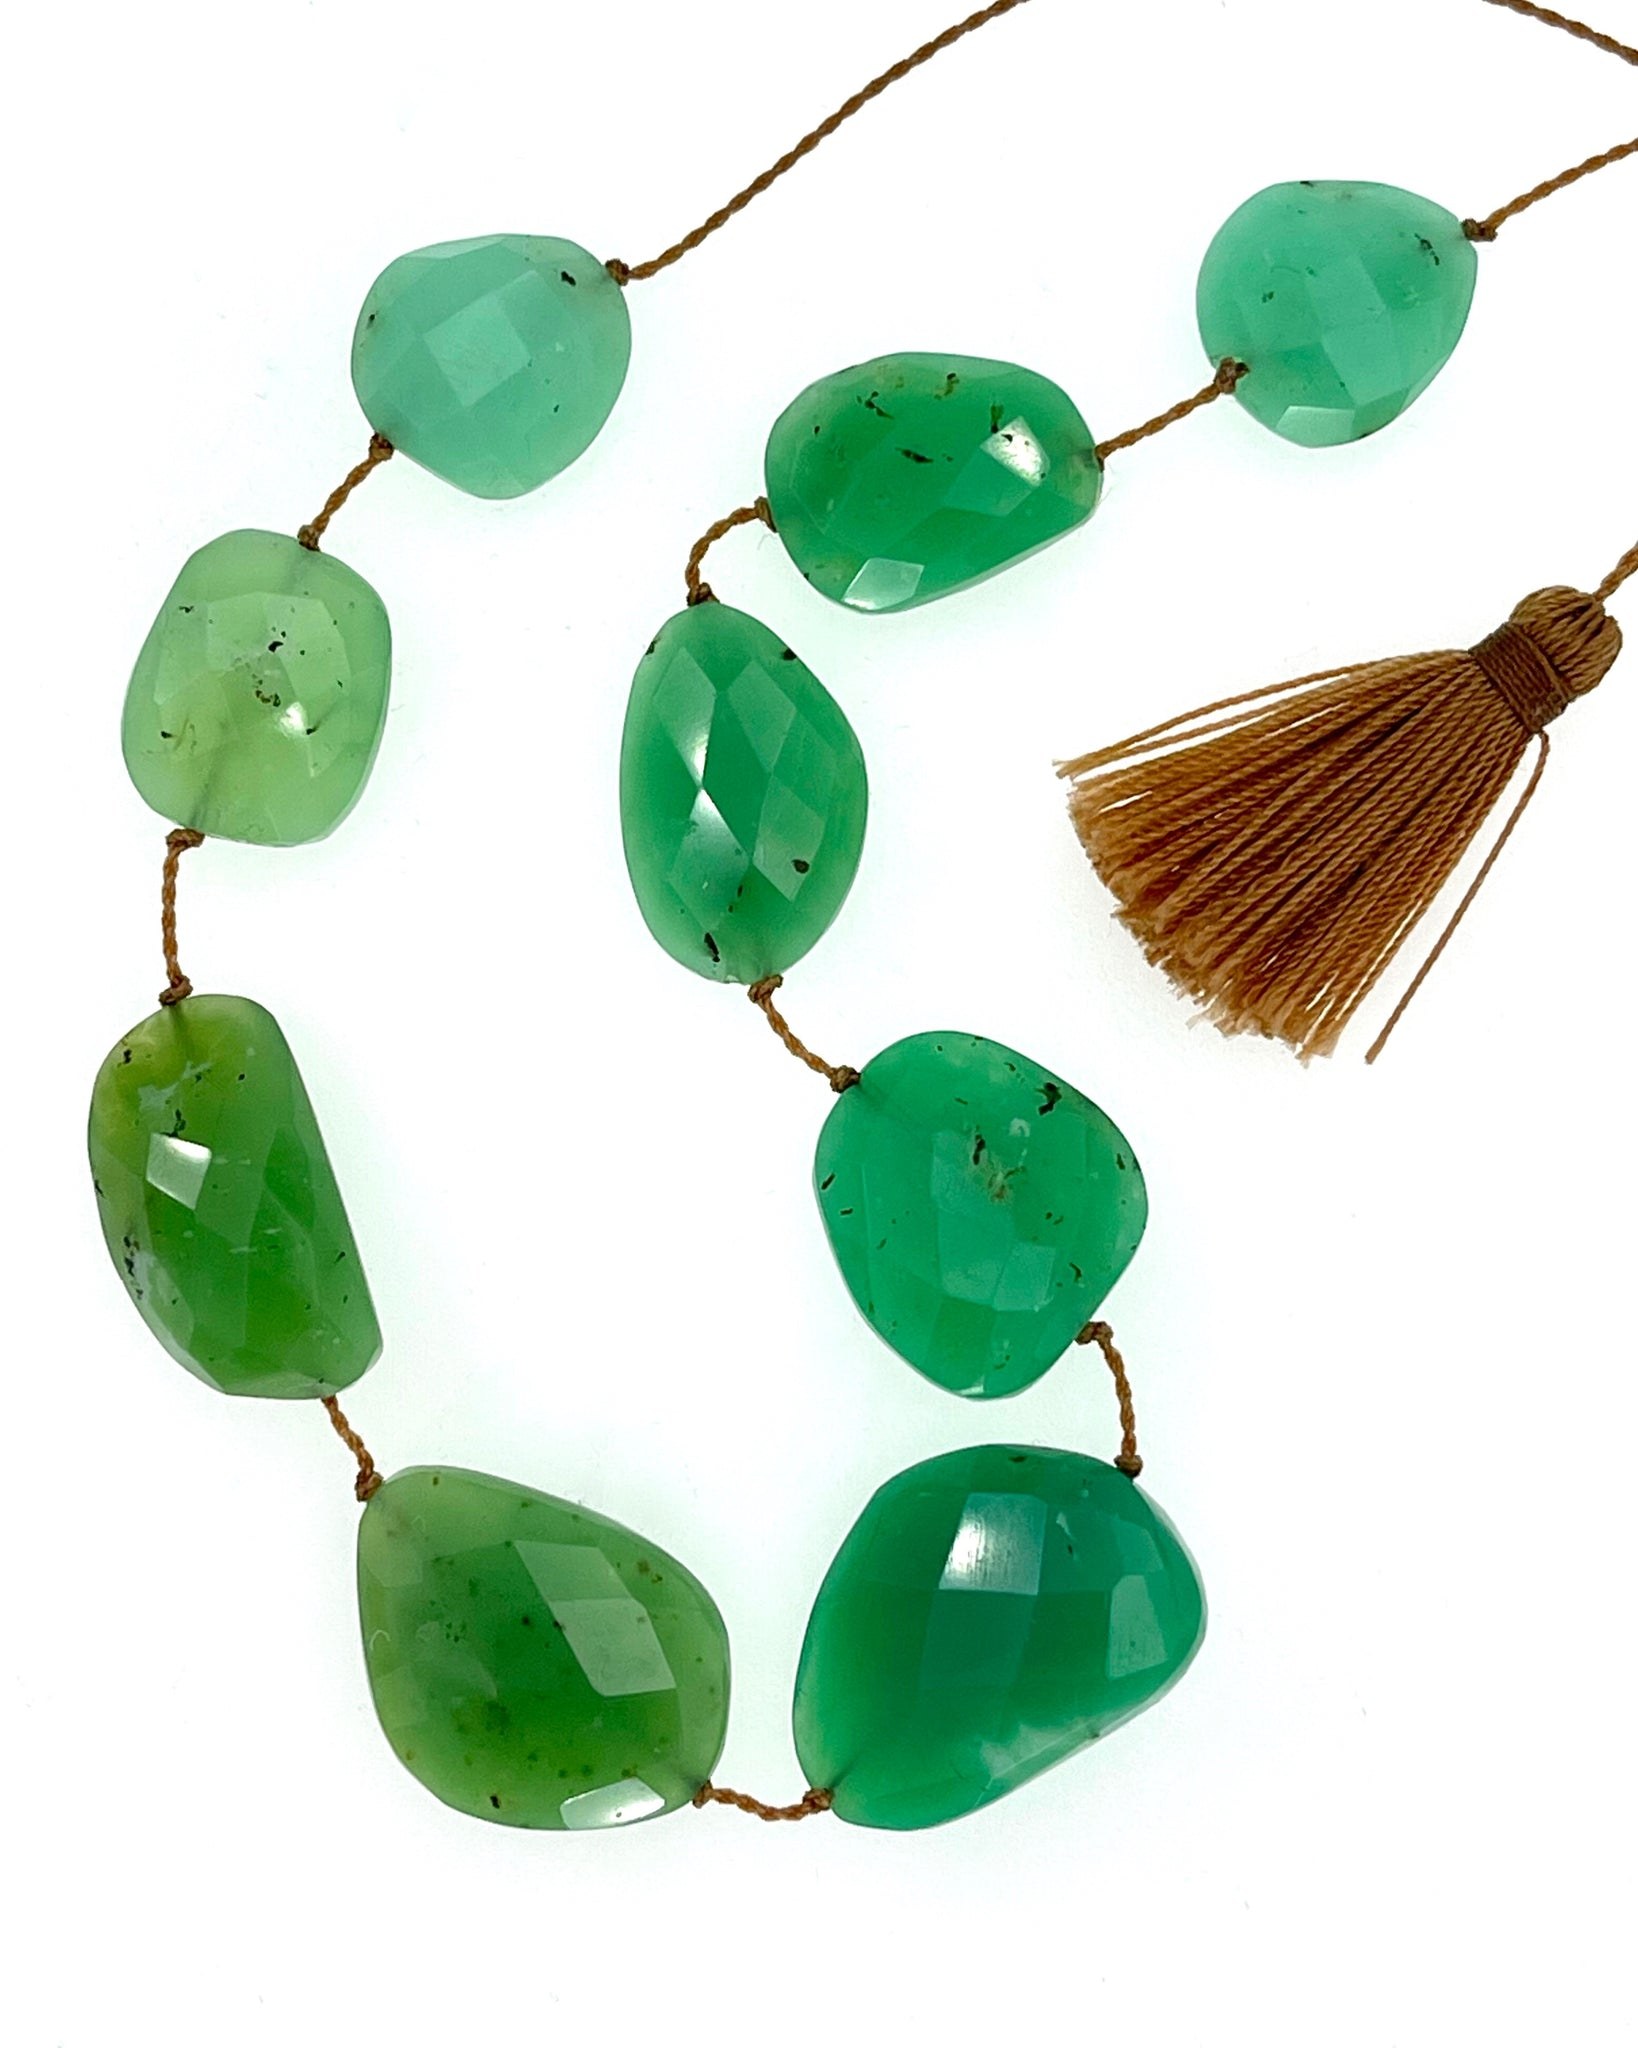 Lena Skadegard Chrysoprase Necklace